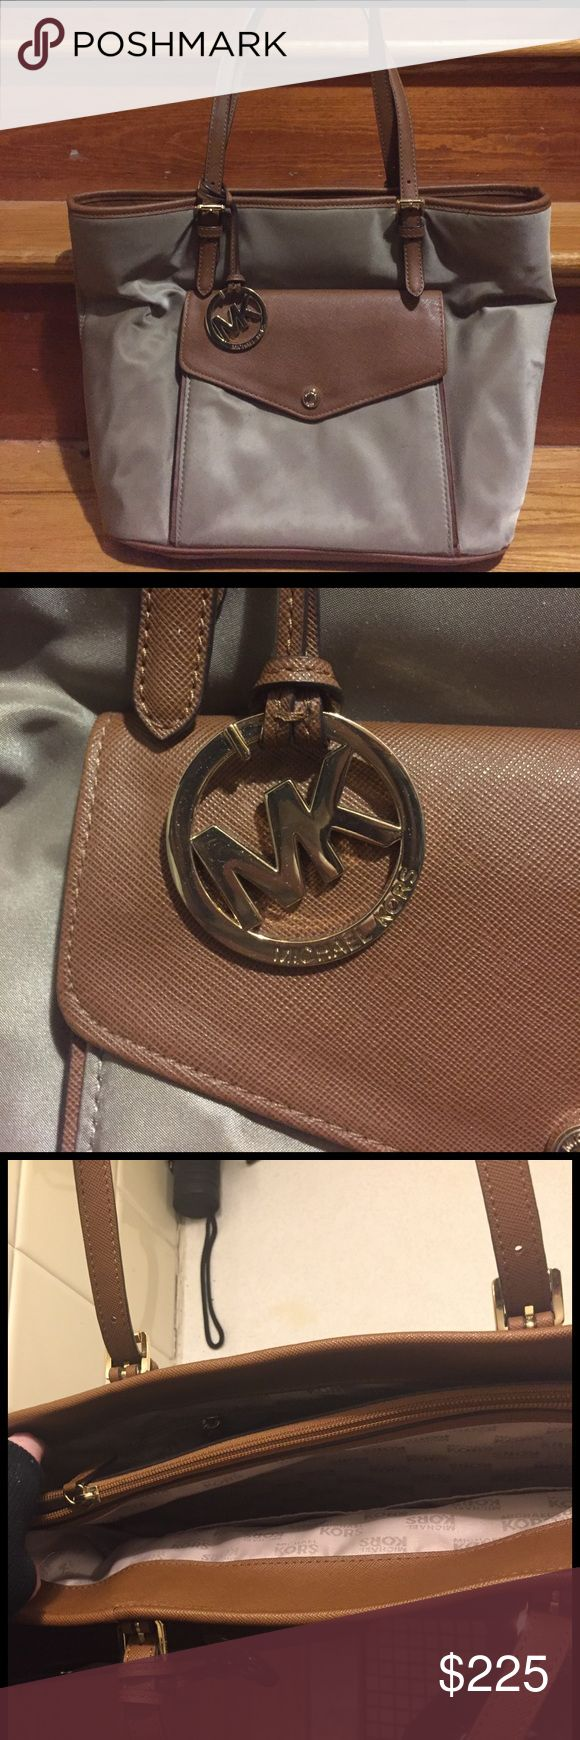 MICHAEL KORS purse Beige and brown purse- used only a few times, no flaws! Has two large pockets on the inside, one large zipper pocket and one small button pocket on the outside. Michael Kors Bags Shoulder Bags